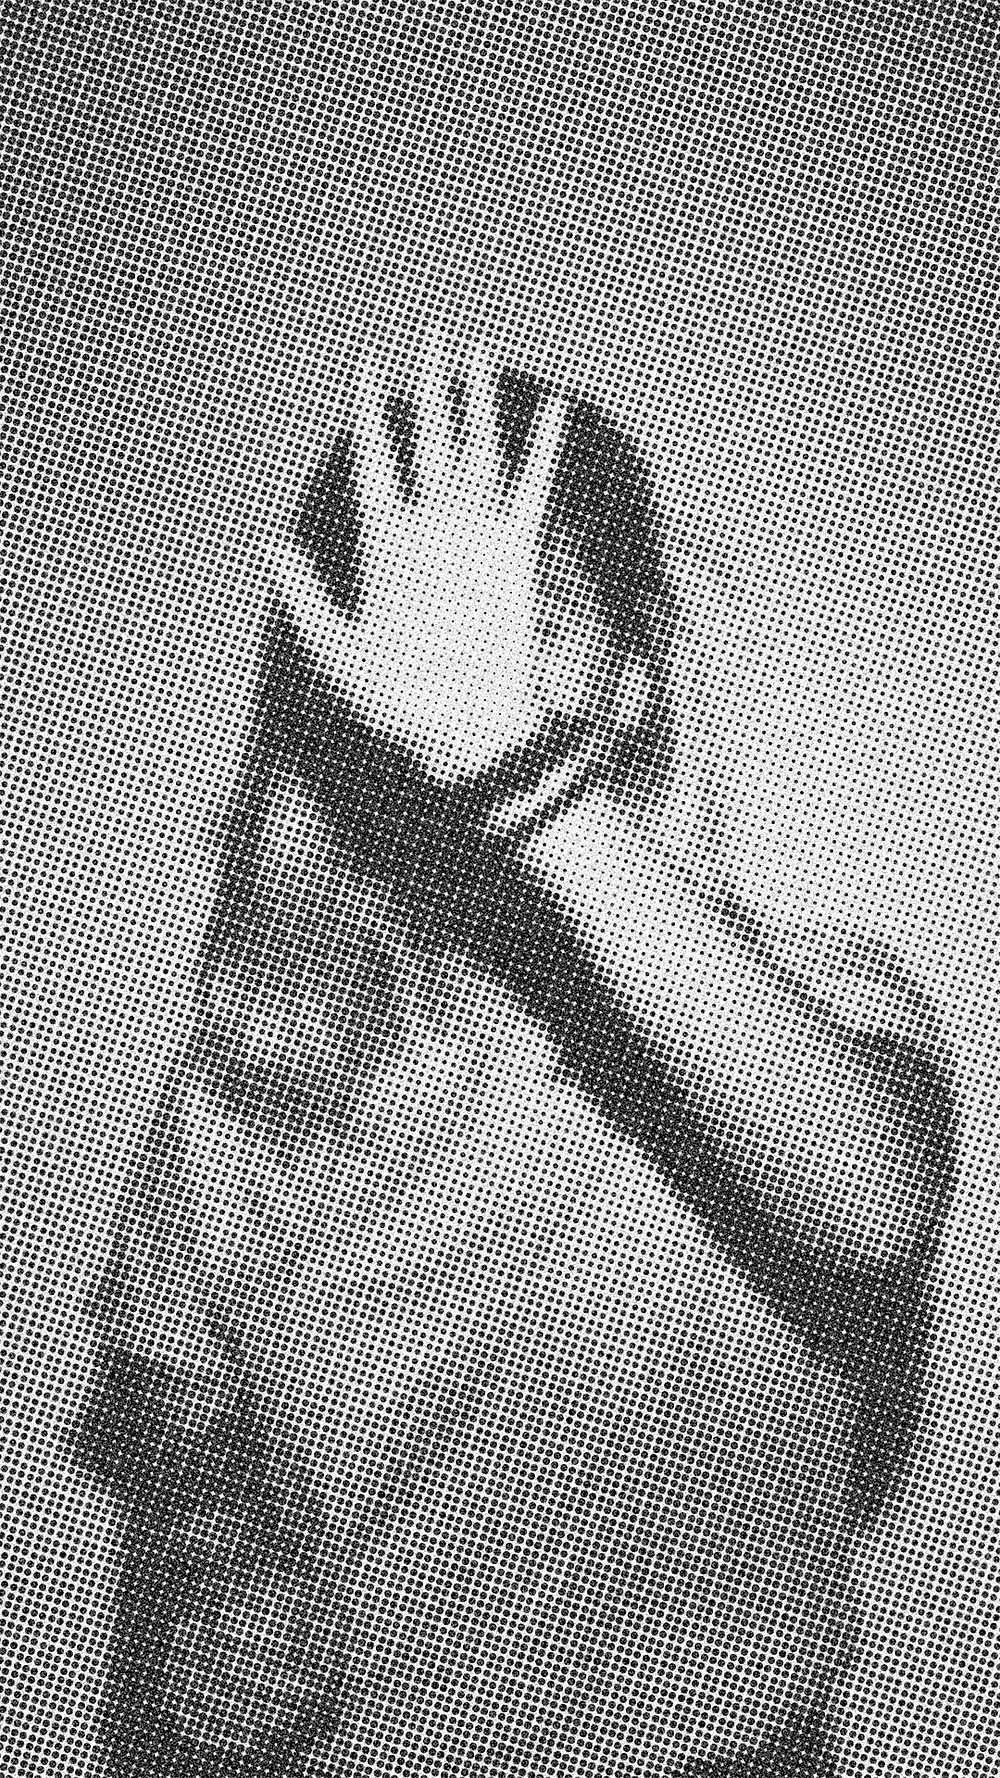 """This photo called """"meio-ton-to"""" represents my first attempt to work with photography and design (another passion of mine), using a photo I took in studio from a girlfriend of mine along with this halftone effect."""